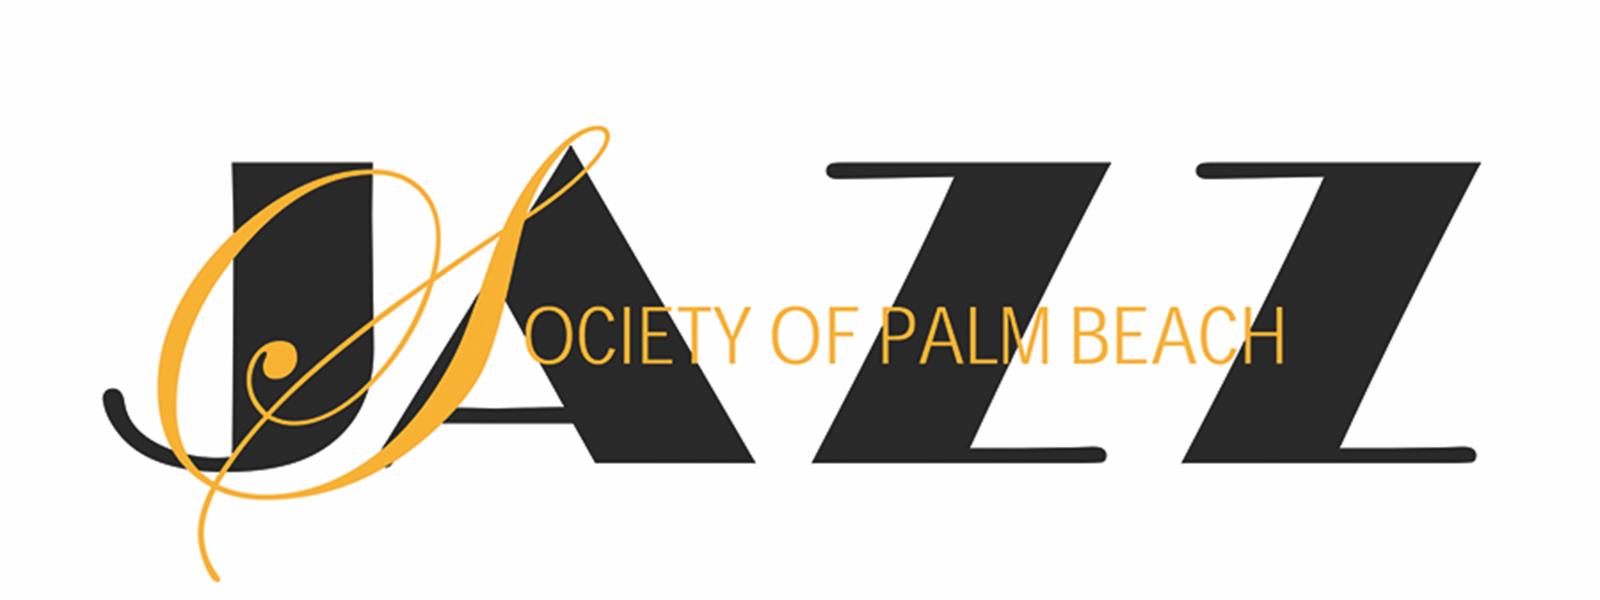 Jazz Society of Palm Beach